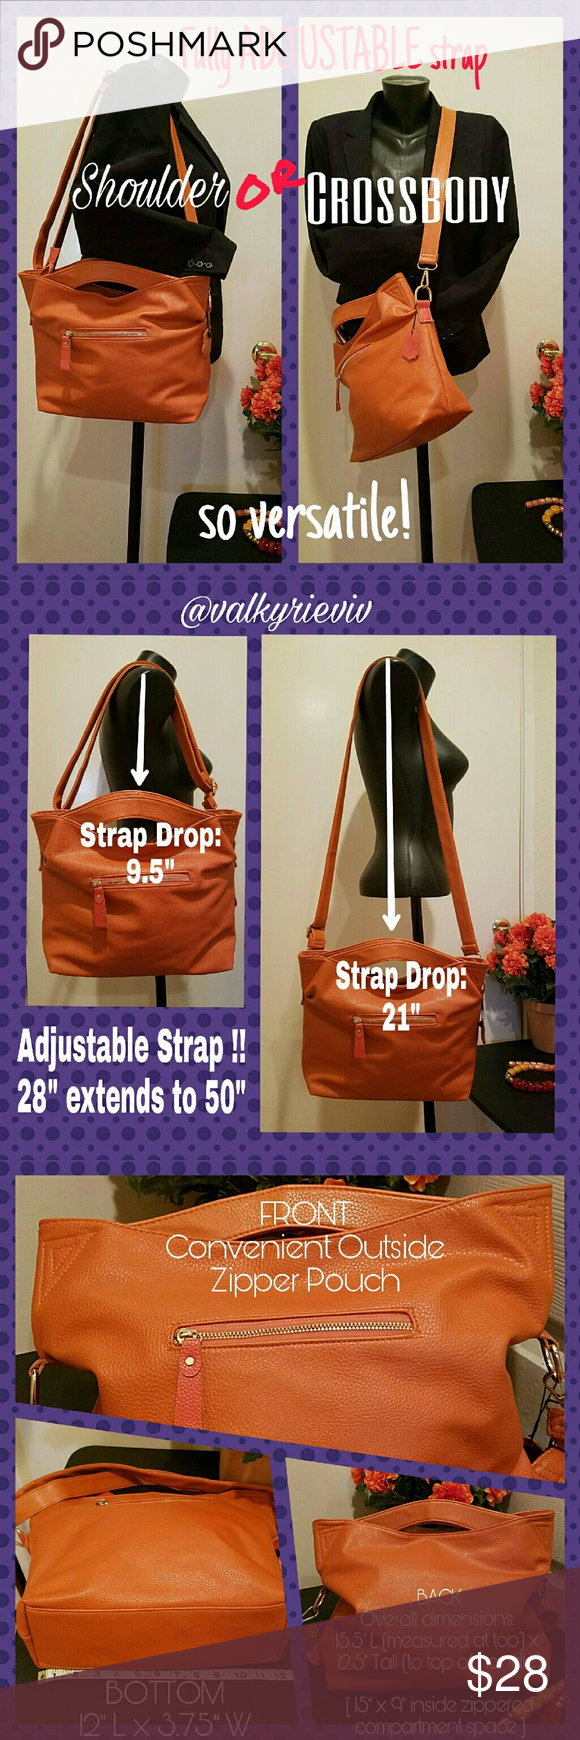 """Leather Tote bag with ADJUSTABLE STRAPS Leather Bag in rich, vibrant Caramel/Camel color. Can't decide between a shoulder bag or a crossbody bag? Why not have BOTH in ONE?!! This gorgeous tote has an adjustable strap to accommodate your every carrying-style needs. Immaculately CLEAN inside and out! Used Once. Like new. Brand """"LGFD"""" printed inside lining. Handles, zippered main compartment, leather swatch. SEE PICS for dimensions and details. No Brand Bags Totes"""